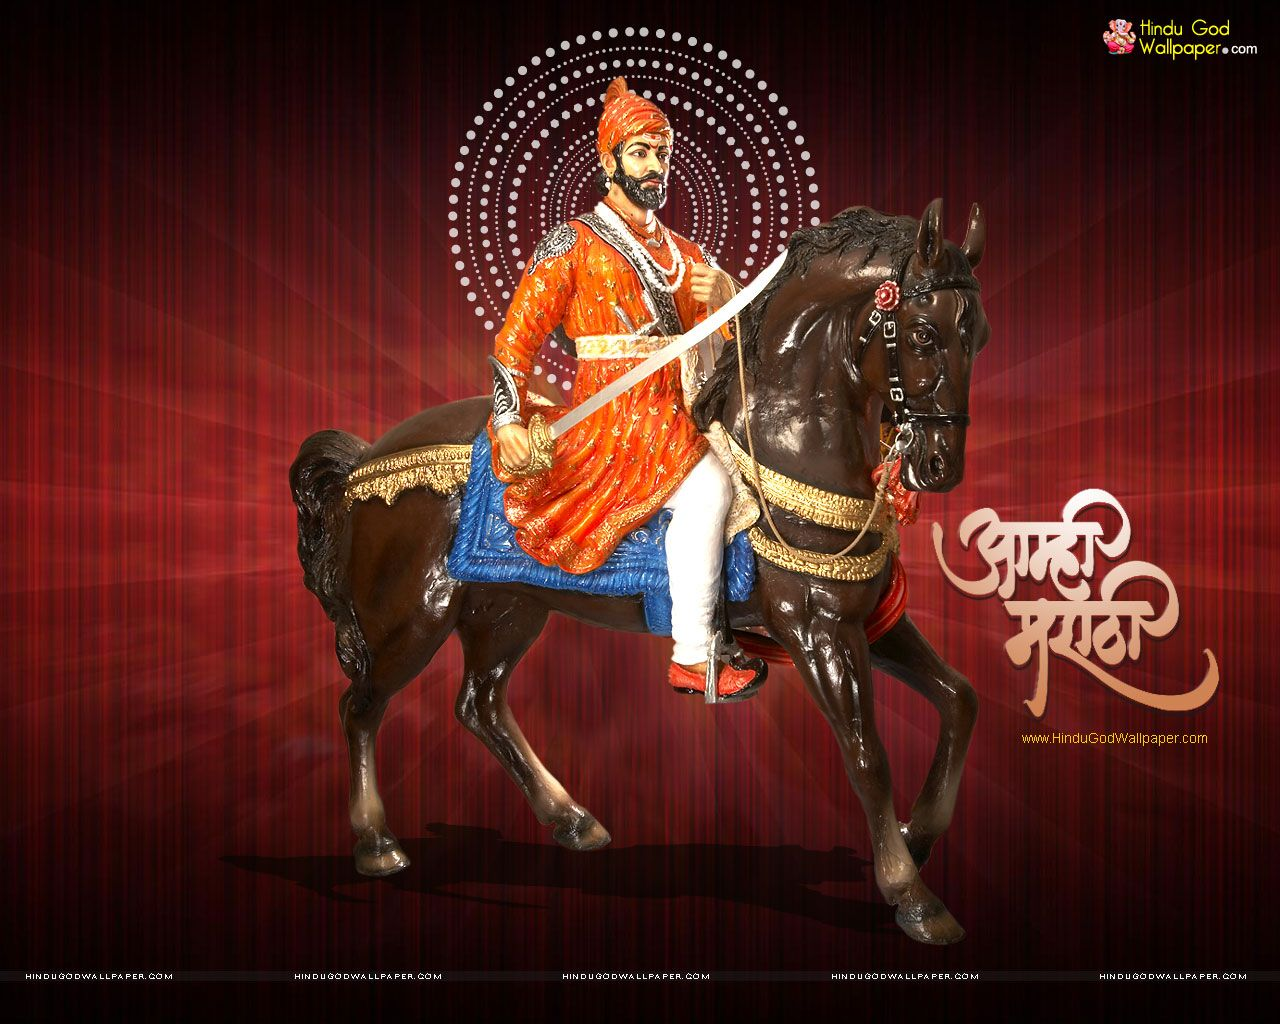 Hd wallpaper shivaji maharaj - Shivaji Raje Hd Wallpapers Free Download